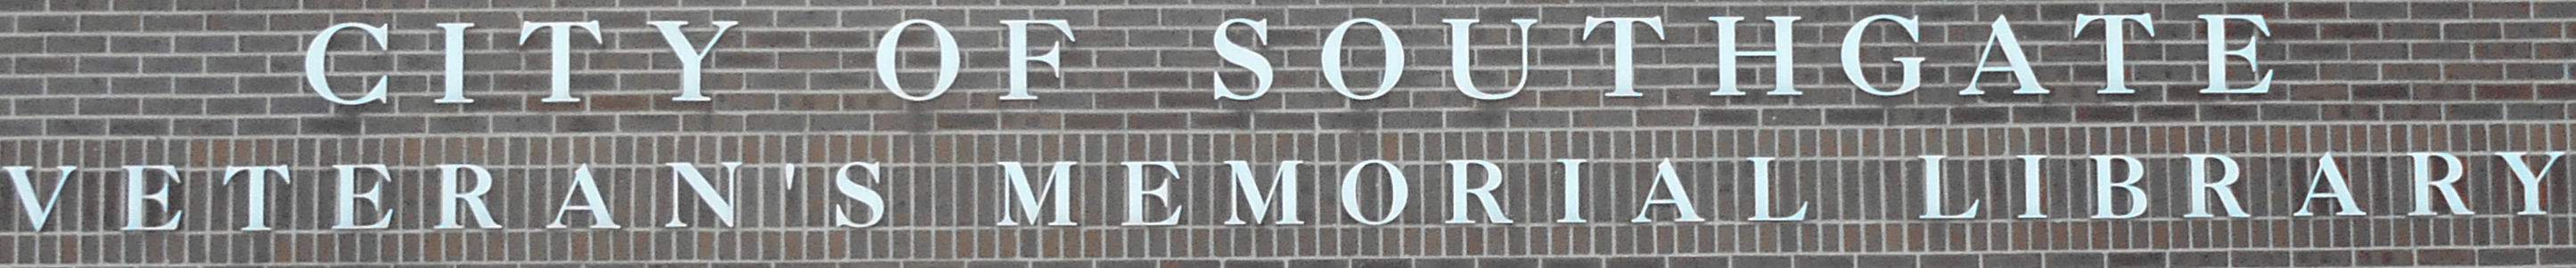 Banner image: Exterior sign for Southgate Library